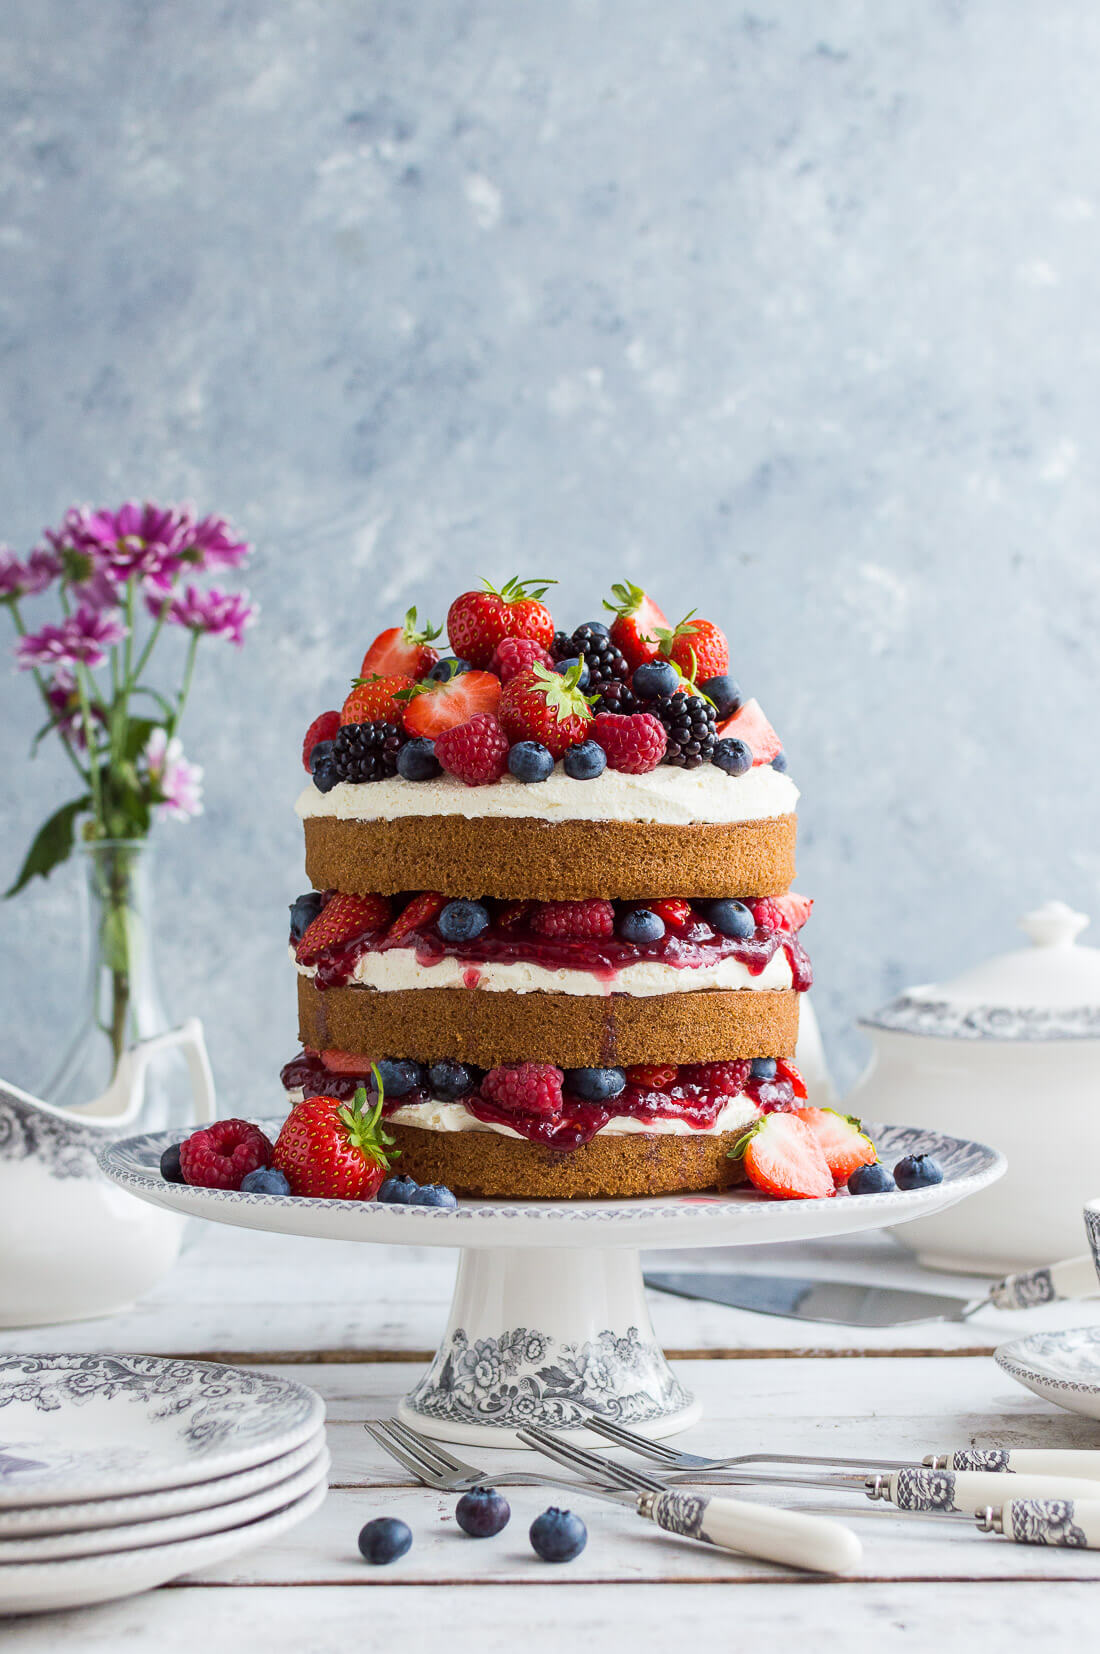 Tempted by this beautiful cake? Start your own Veganuary with this simple vanilla sponge